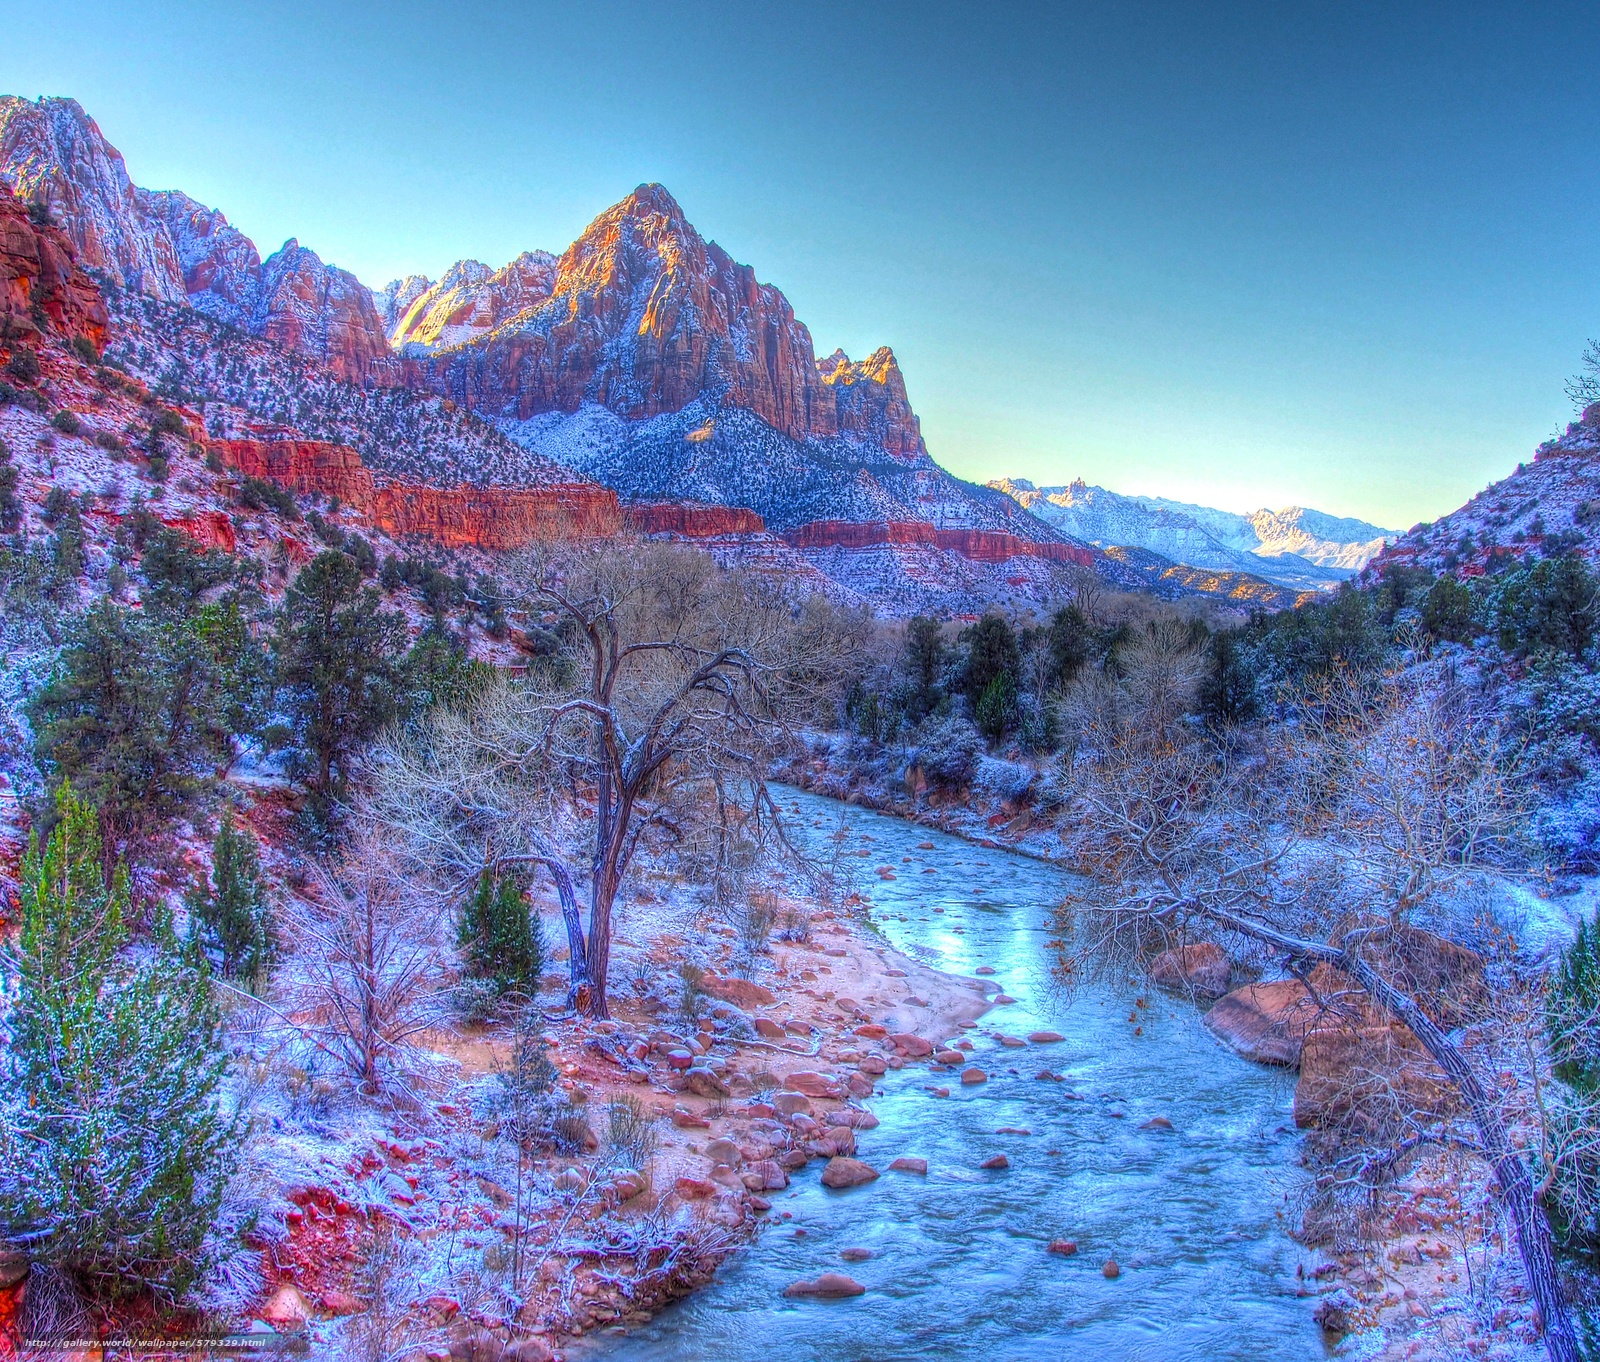 Download wallpaper Zion National Park small river Mountains trees 1600x1362